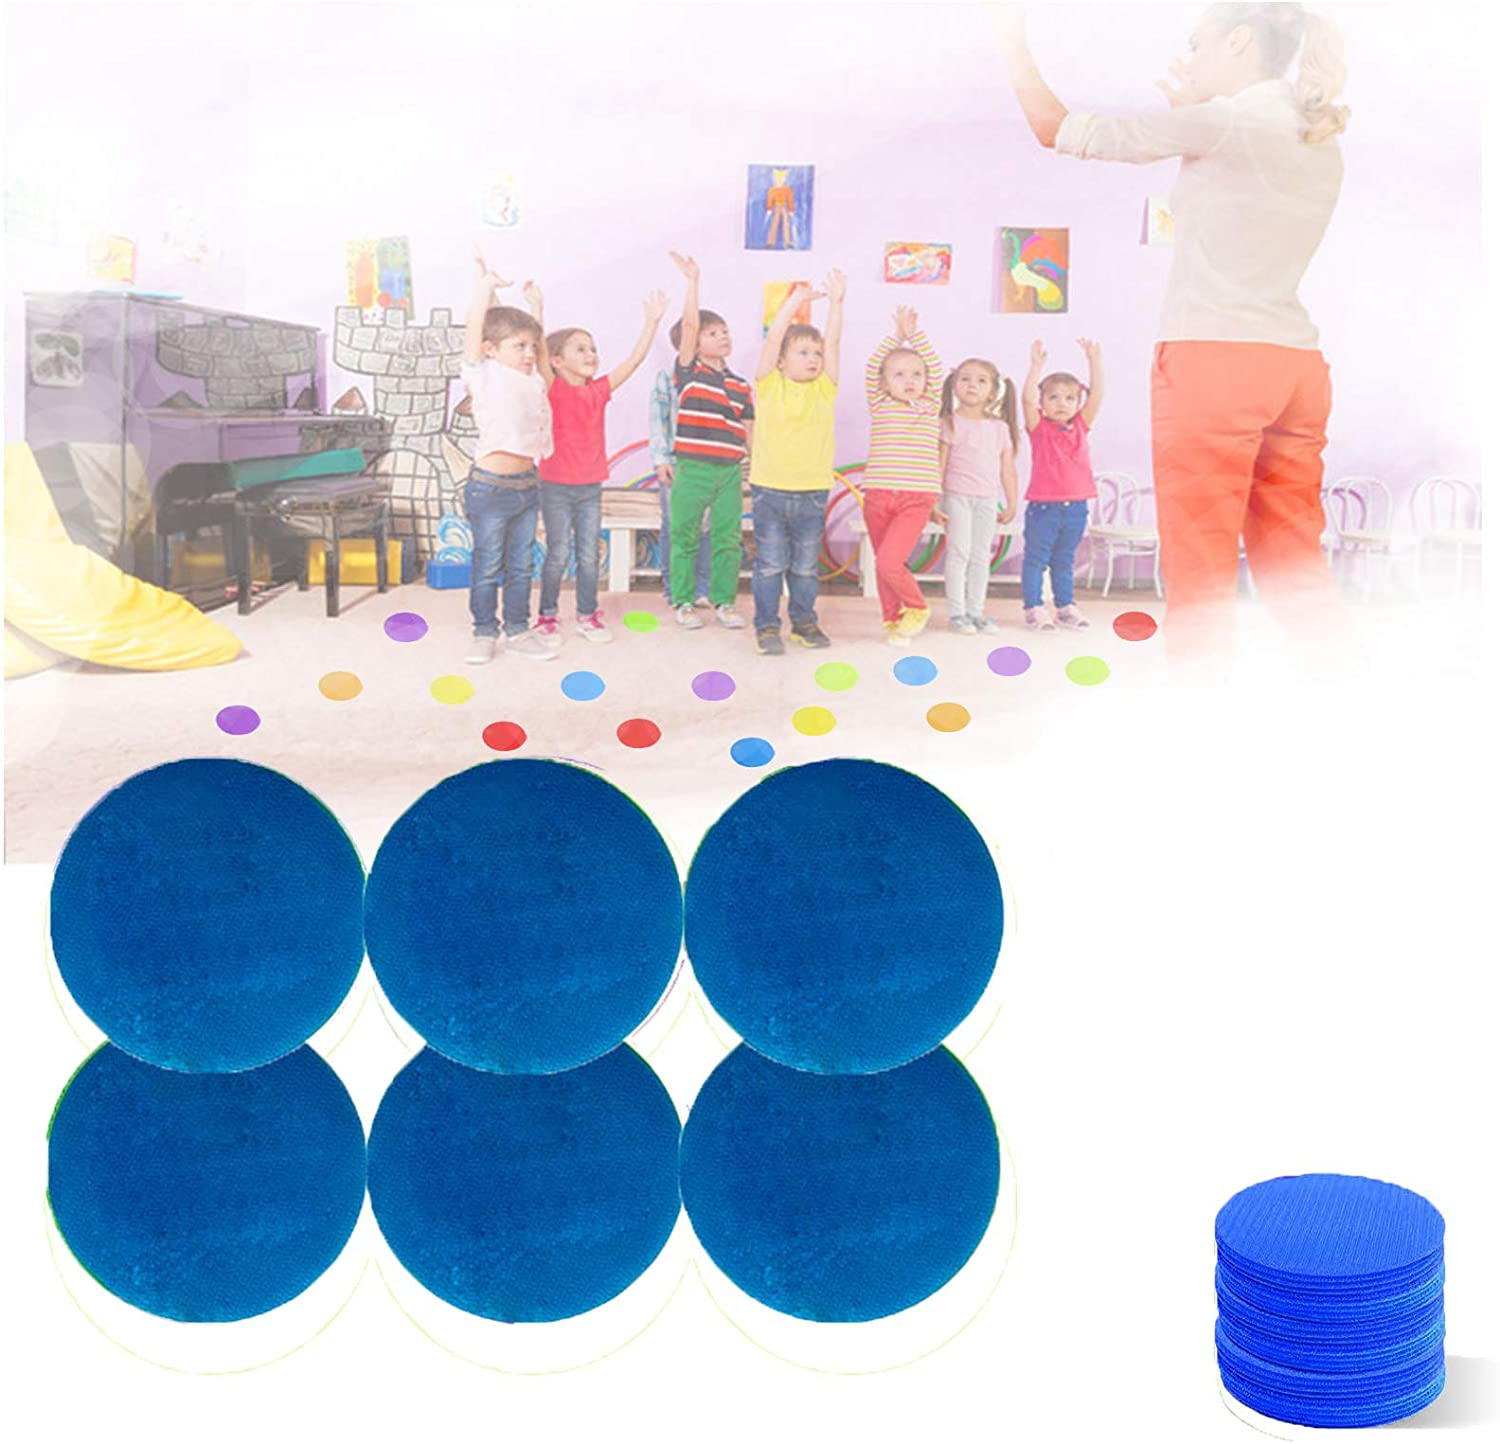 Mark Its Sitting Carpet Spots to Educate,Carpet Markers Sitting Spots,Rug Circles Marker Dots Carpet Spot Markers for Teachers, Preschool Kindergarten Kids and Gym (Blue,4 Inch)